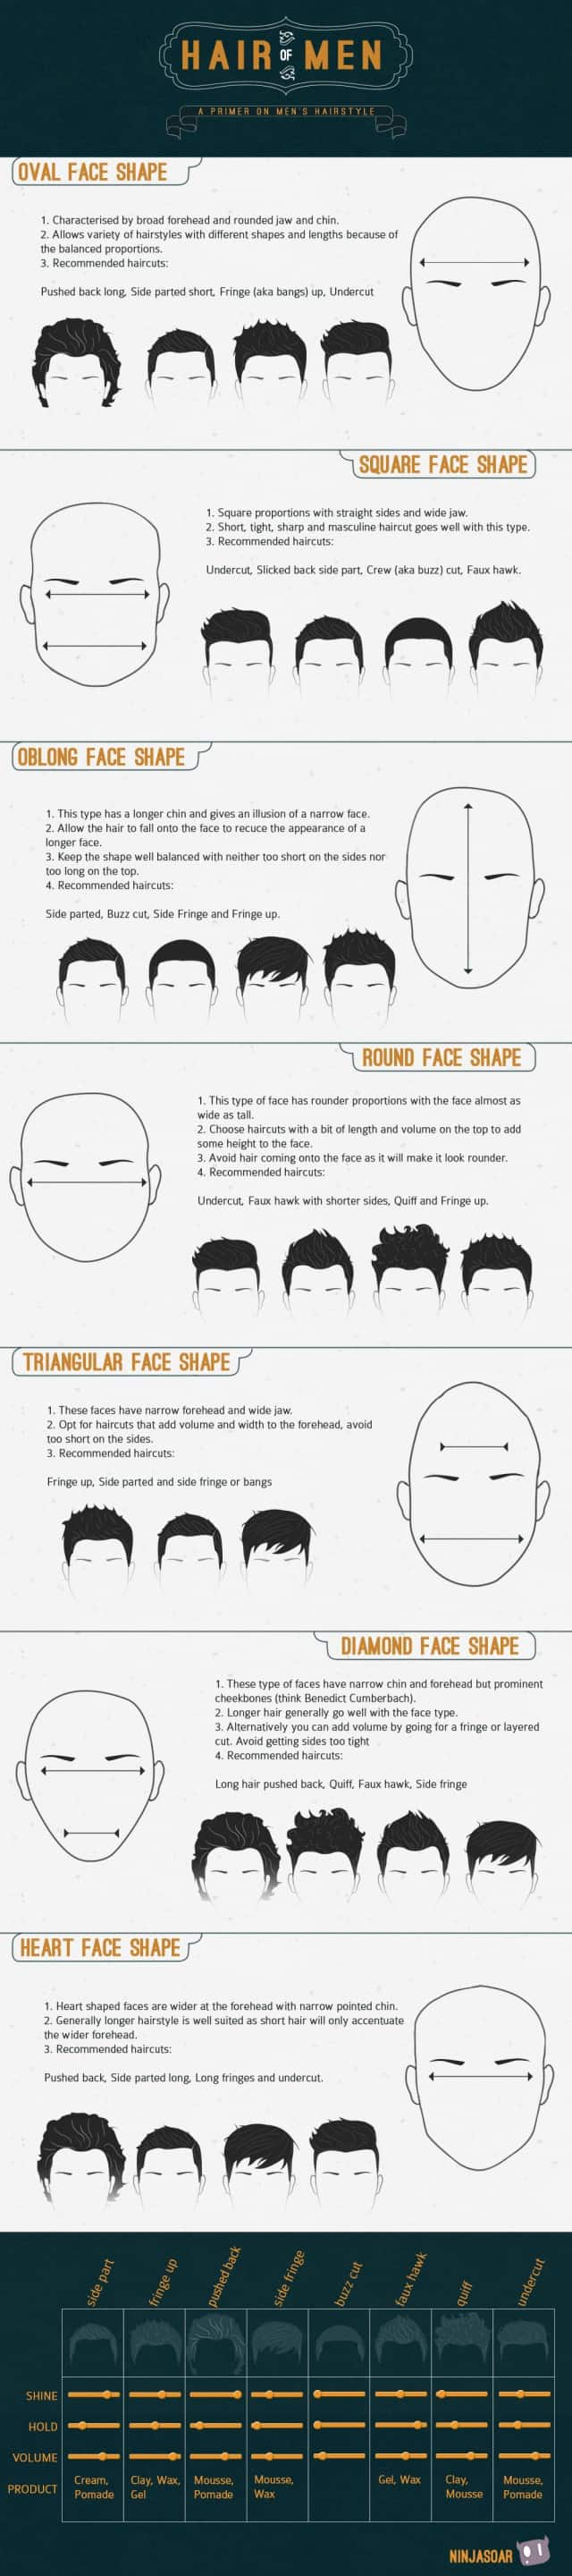 Men Hairstyles Infographic